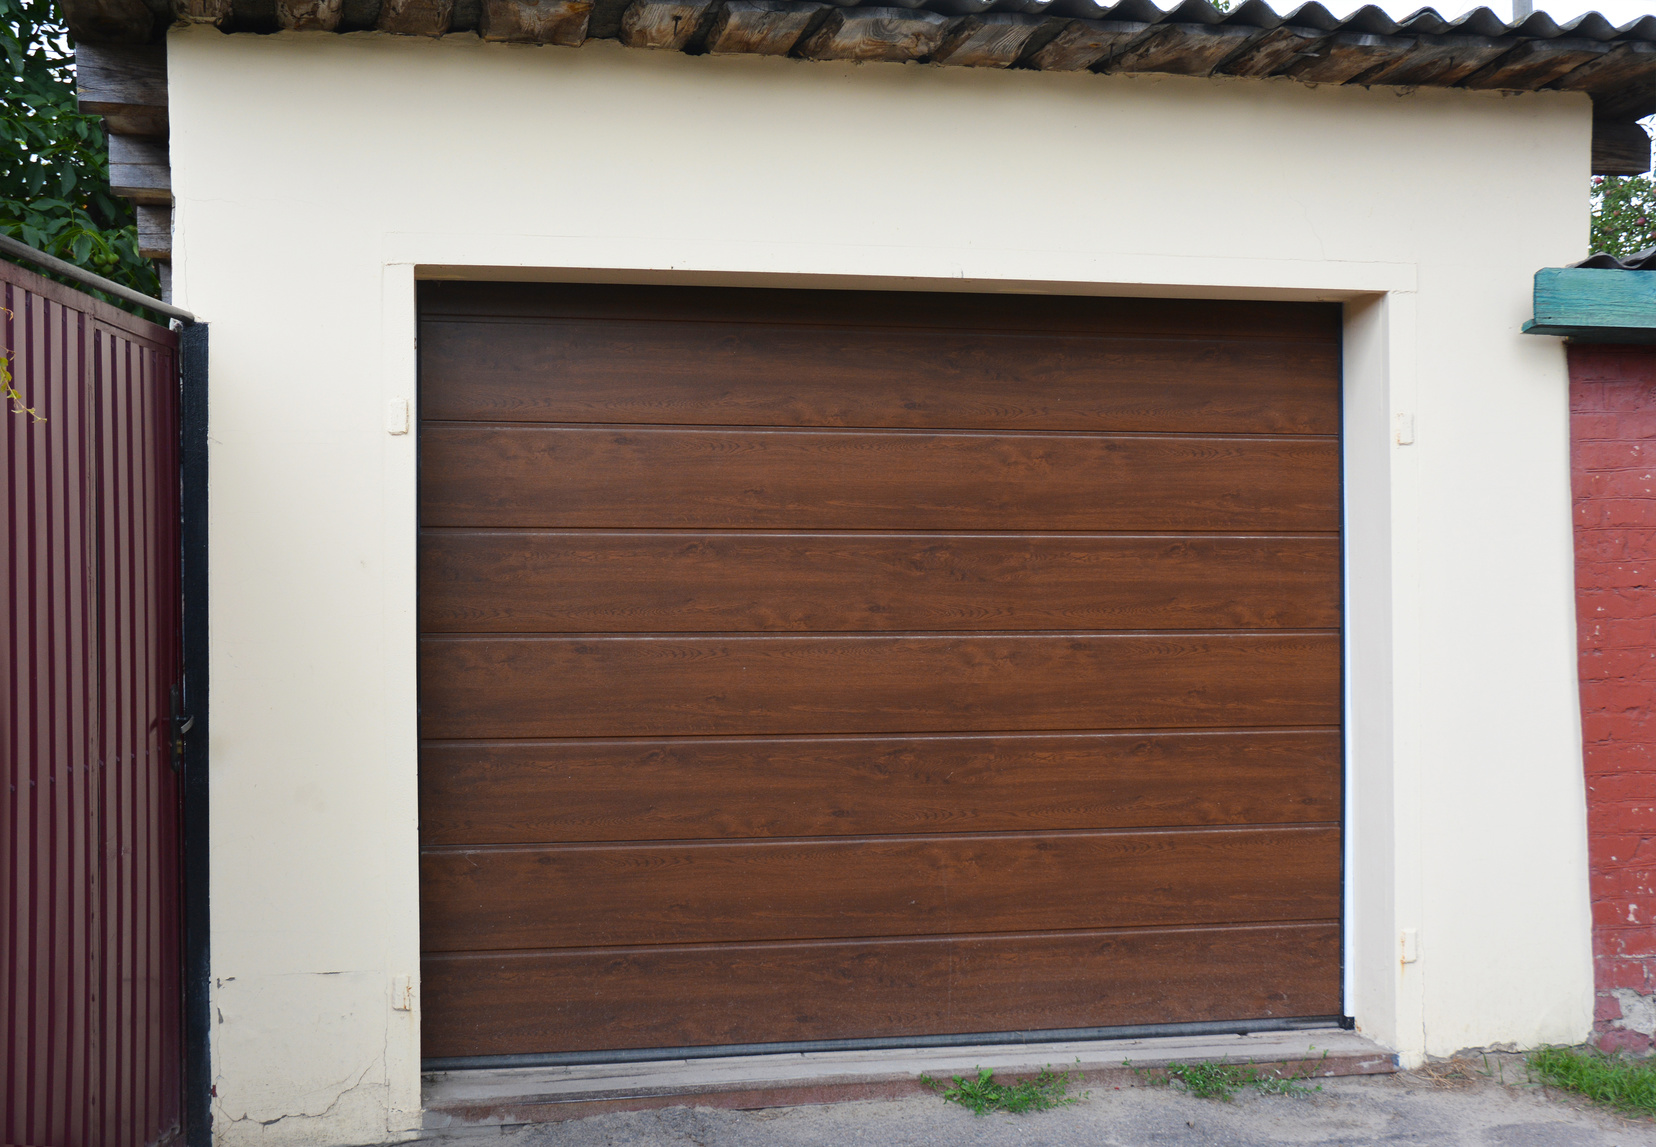 How to Select an Elite Garage Door Company